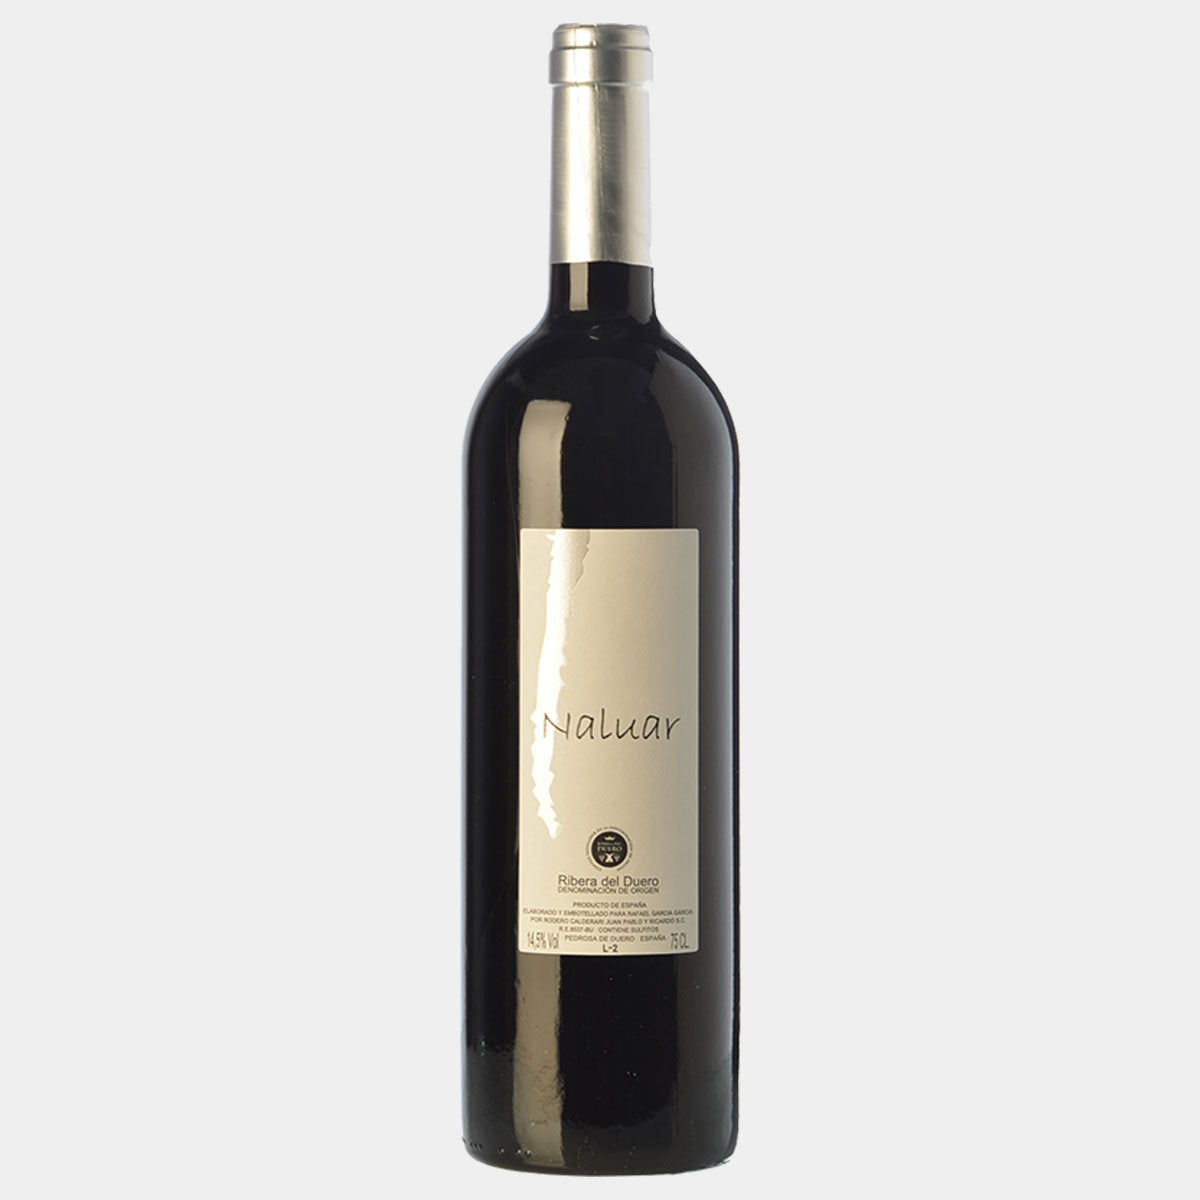 Naluar - Wines and Copas Barcelona